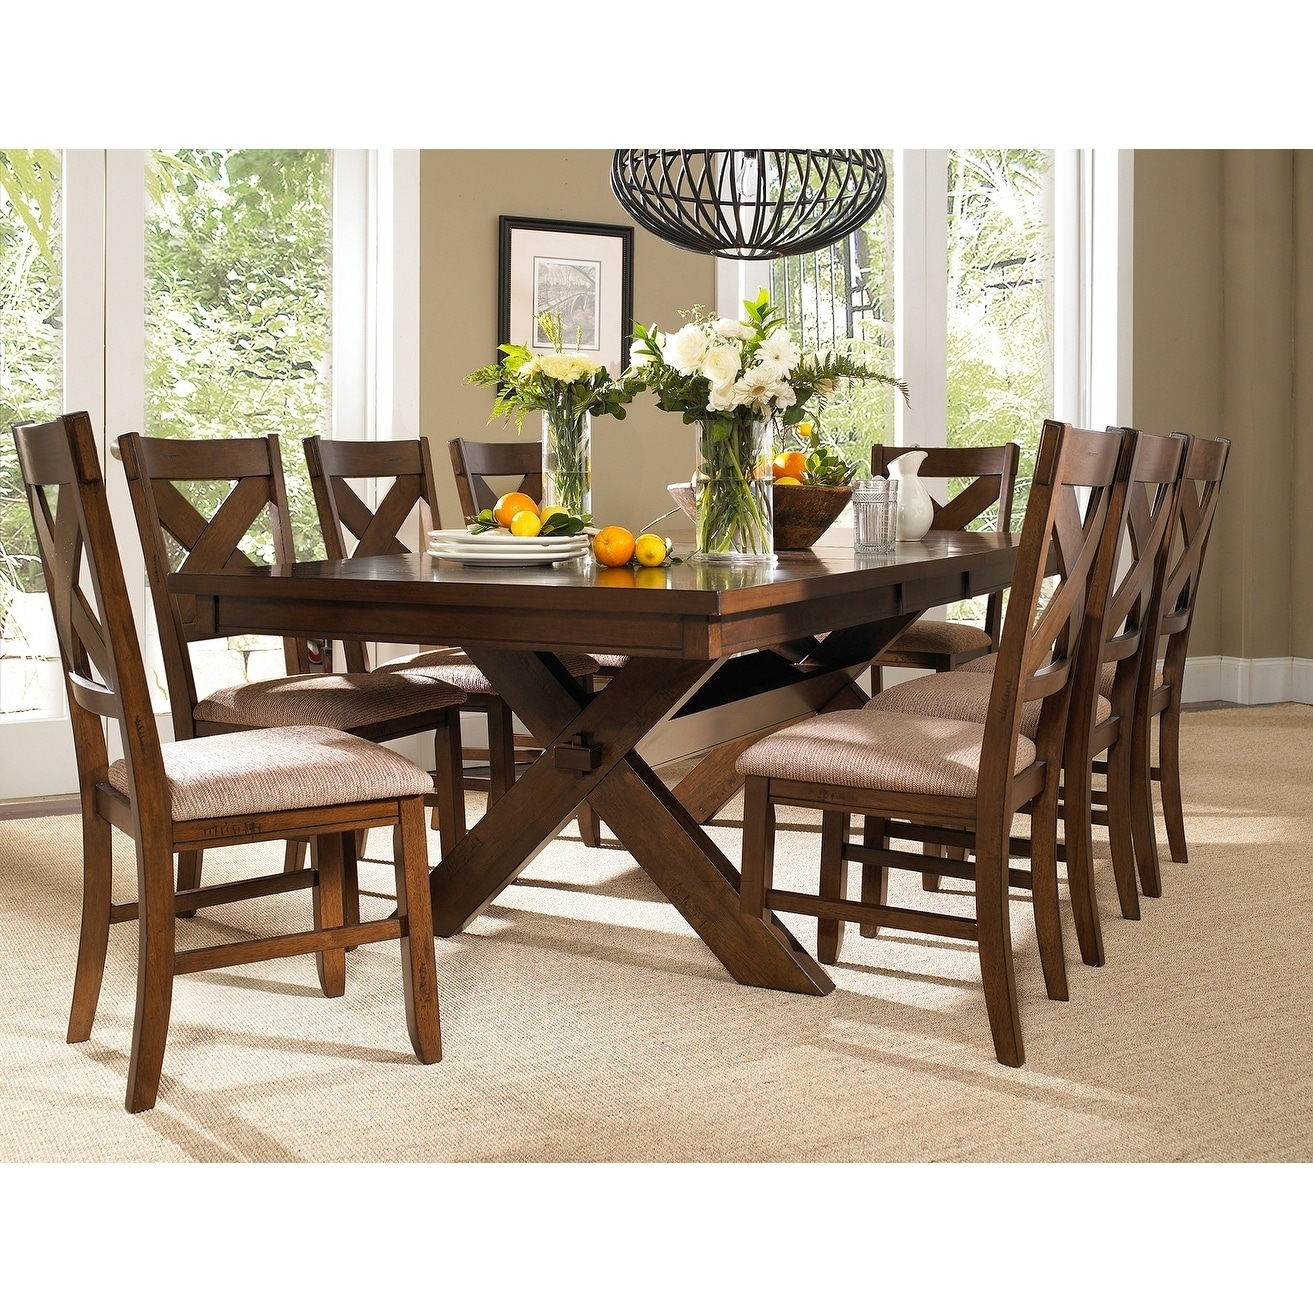 Buy Rectangle Kitchen & Dining Room Sets Online at Overstock ...